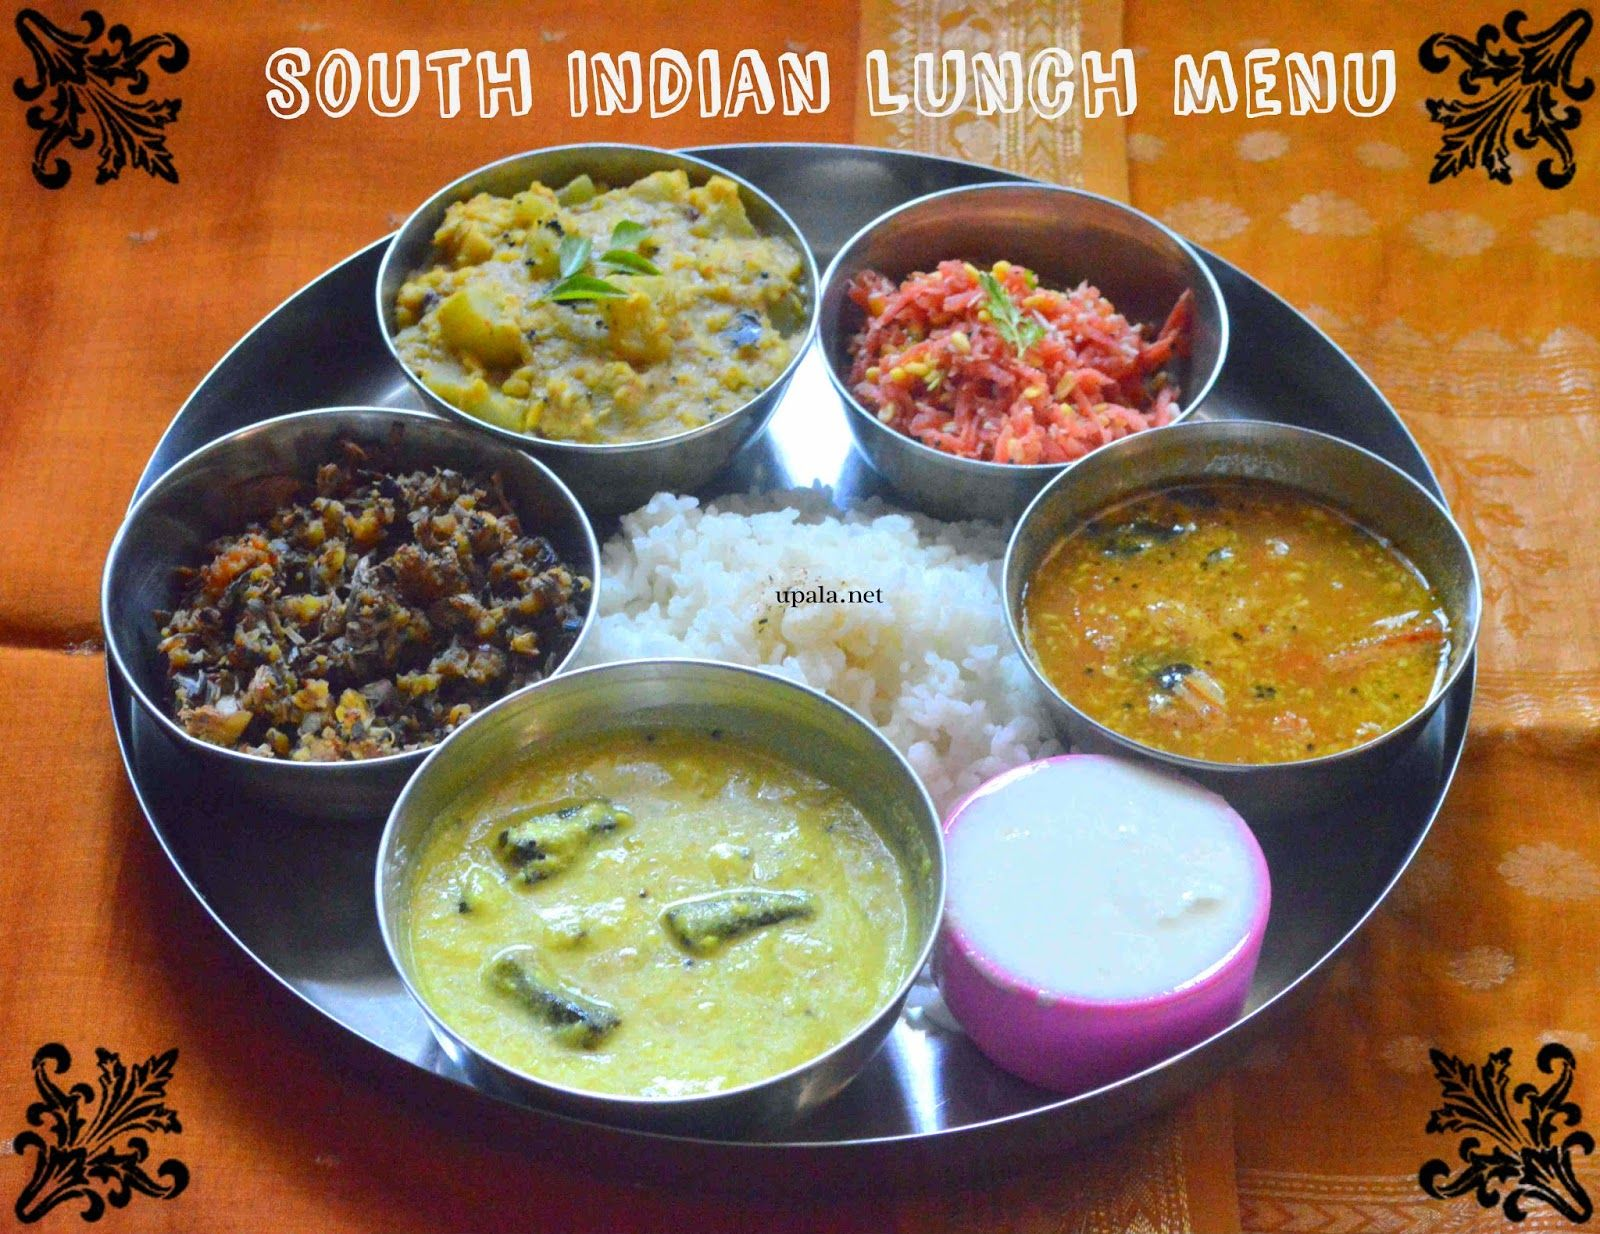 South Indian Lunch menu1